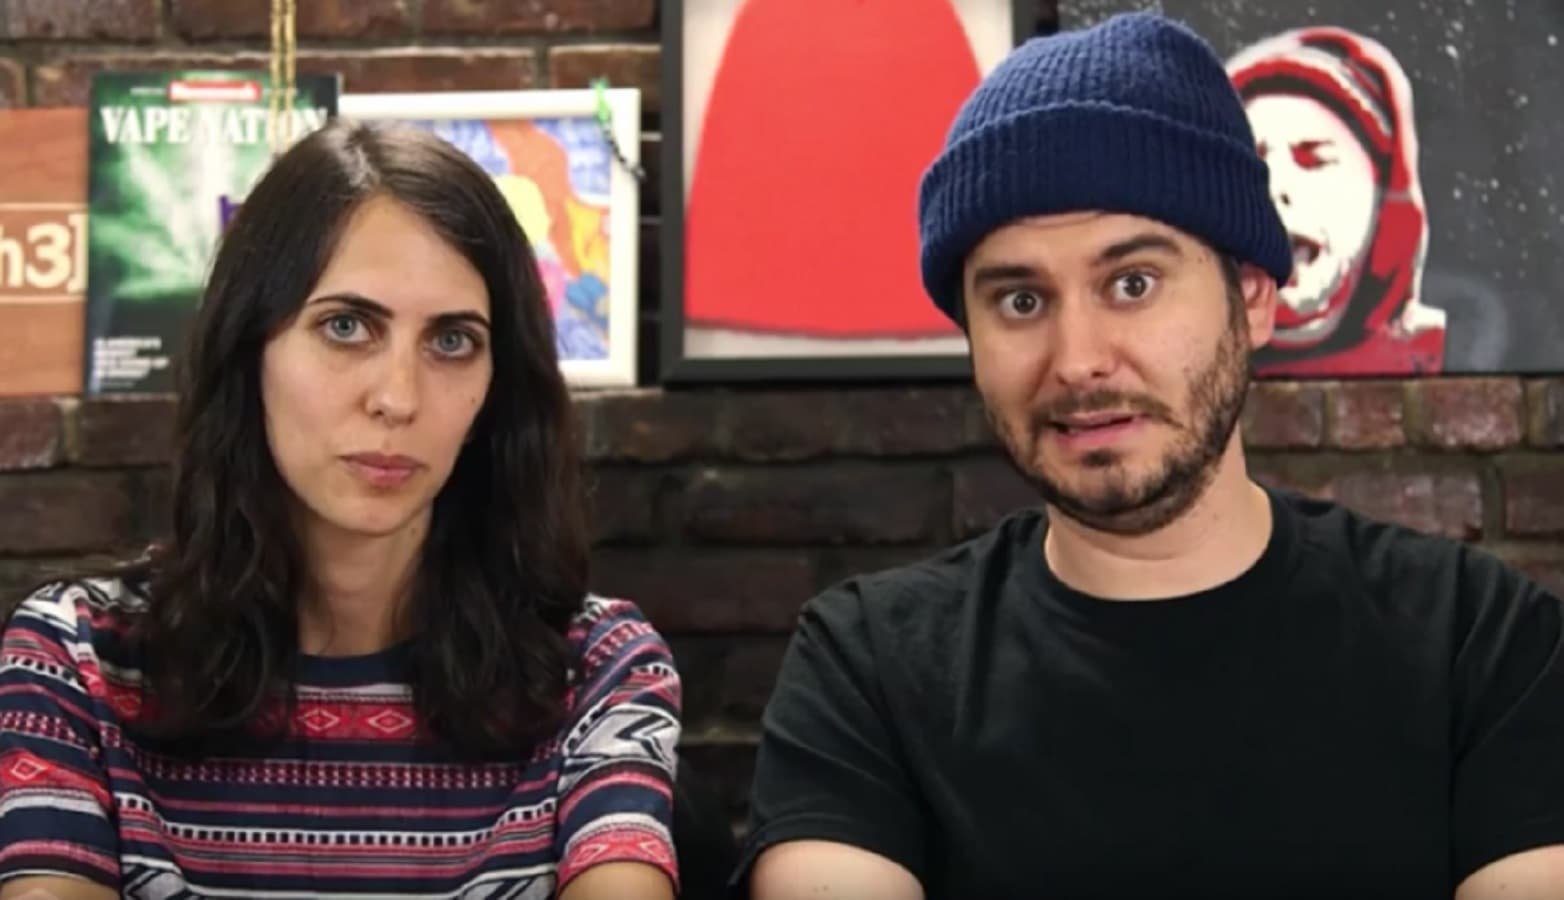 h3h3 productions on youtube